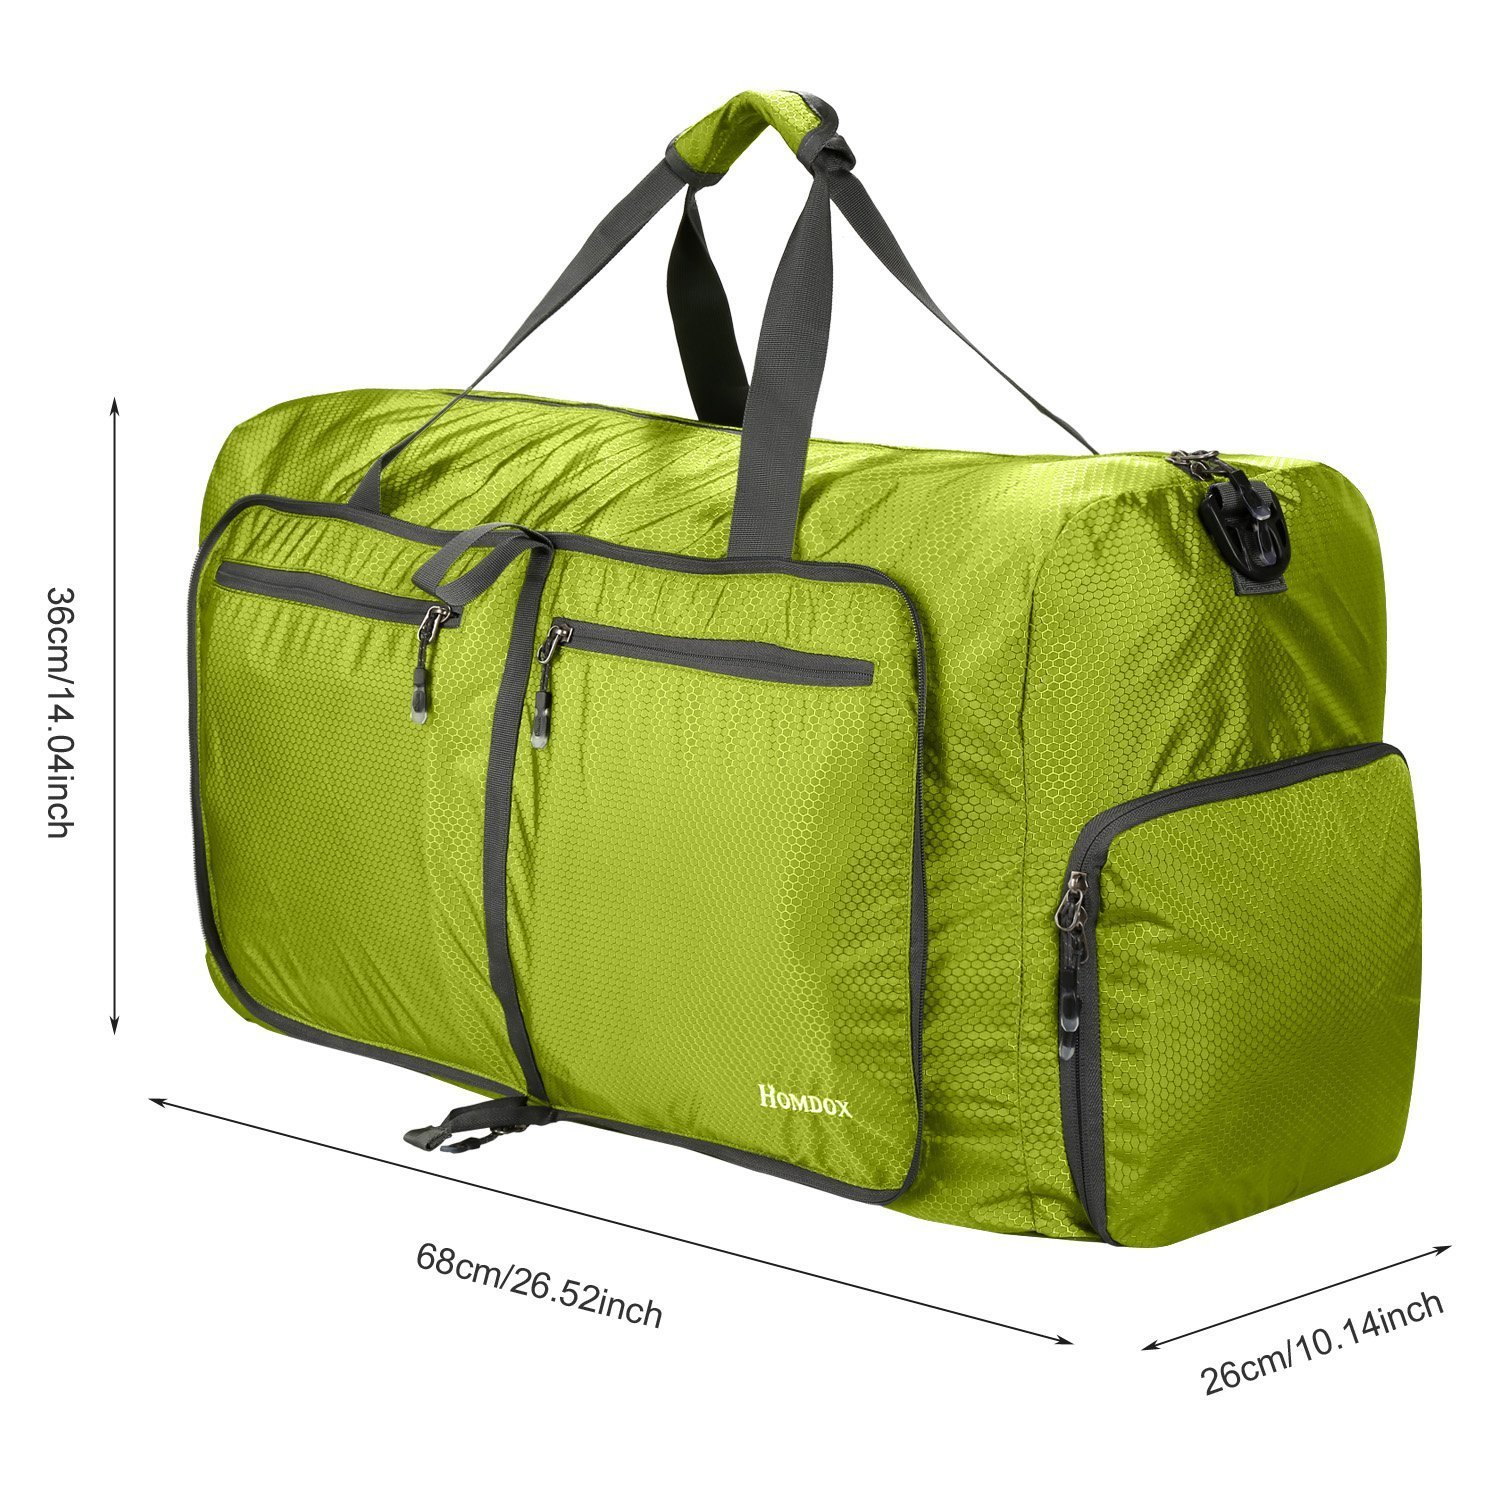 70d833dd42e2 80L Foldable Duffle Bag, Lightweight Travel Bag for Shopping Gym Sport  Camping, Extra Large Strong Storage Bag - 27